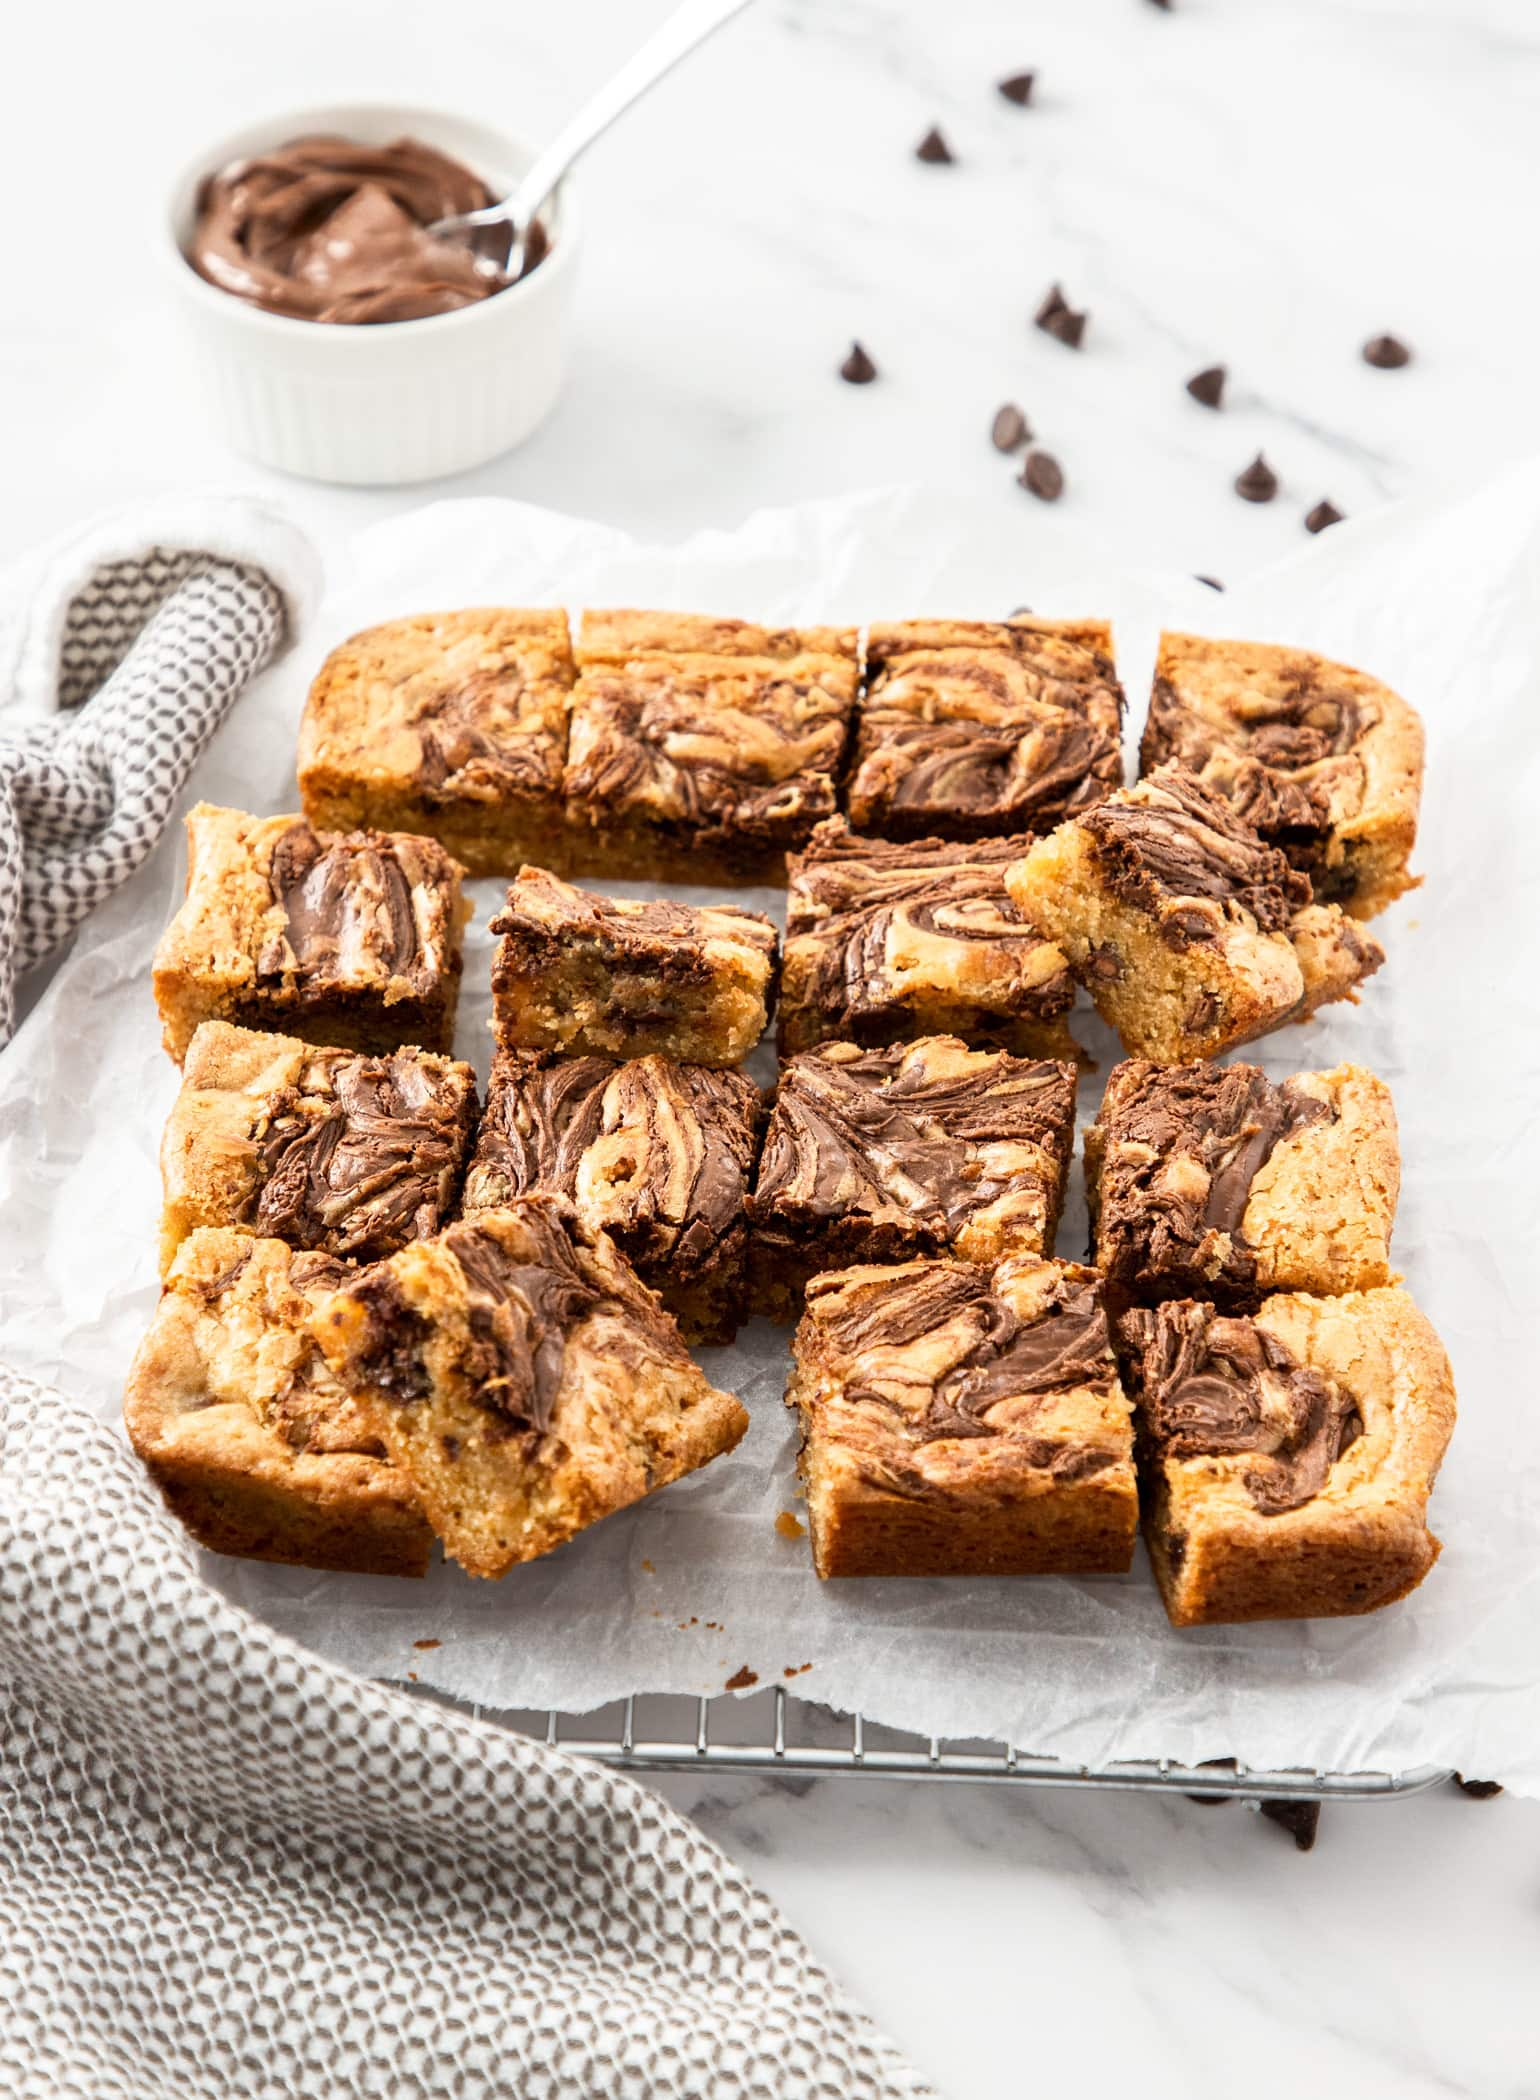 A batch of blondies on a sheet on baking paper with a small bowl of nutella in the background